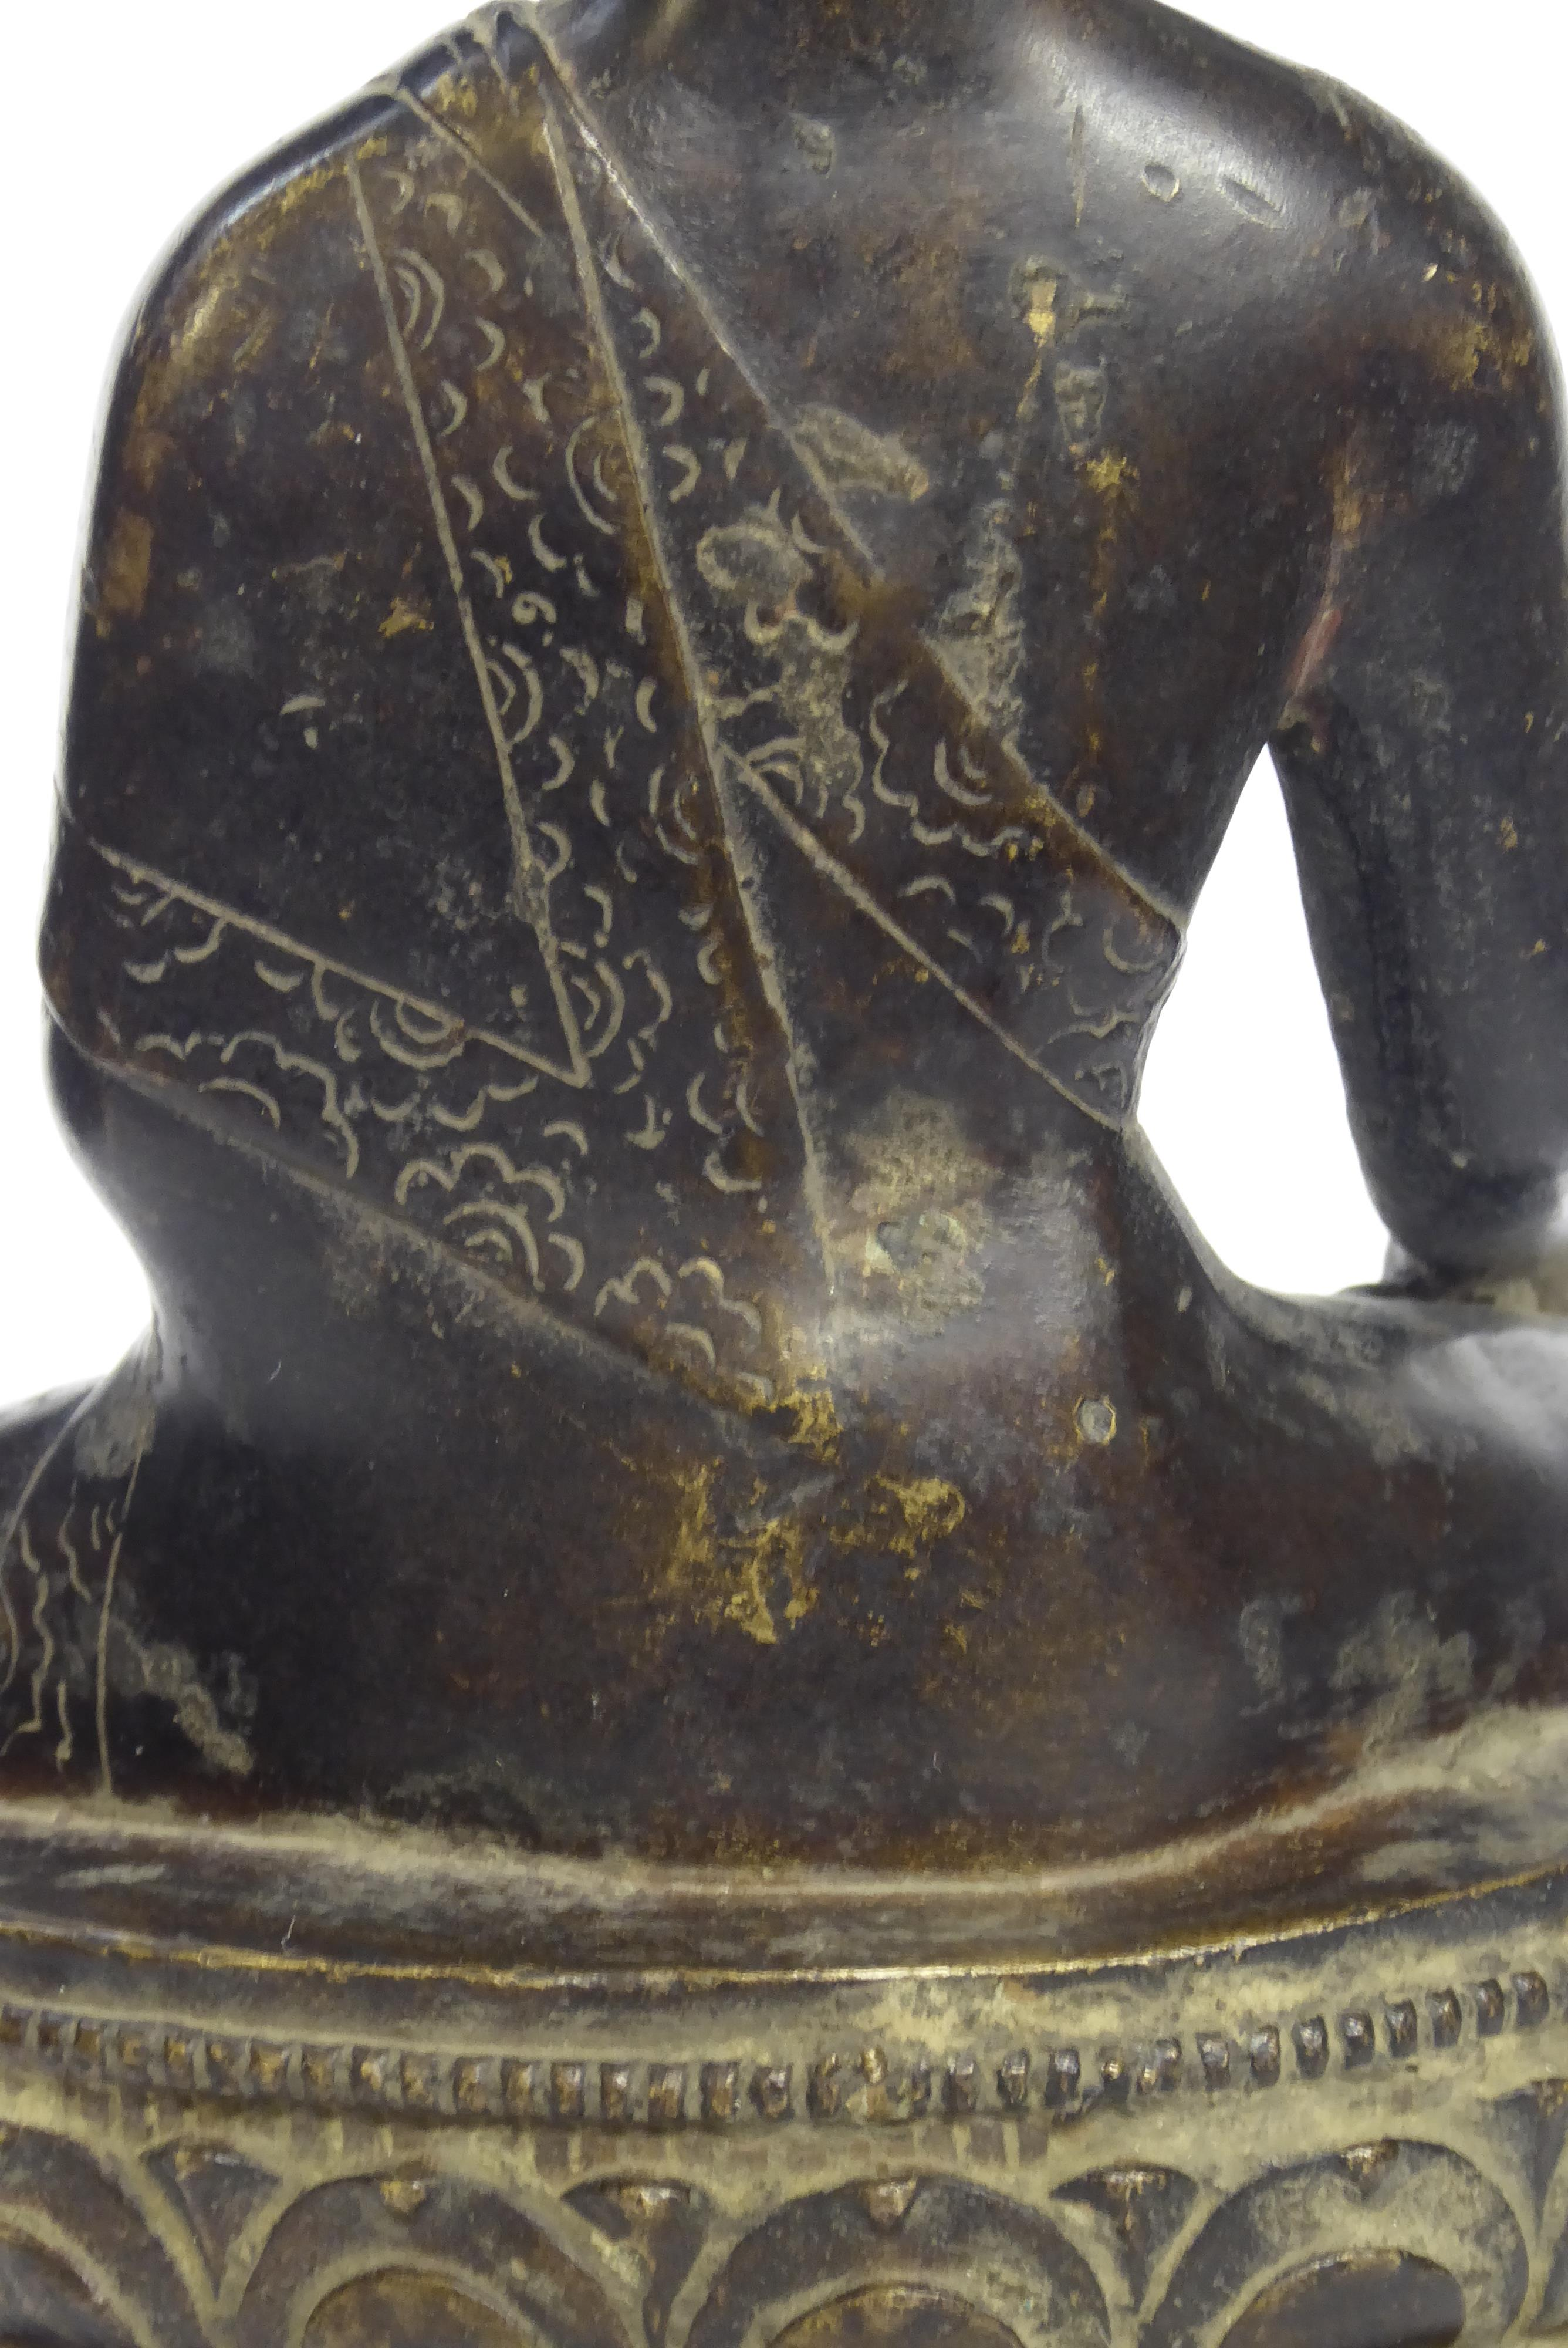 Lot 170 - A CHINESE BRONZE BUDDHA Seated pose with ceremonial vessel and double lotus base Bearing a label